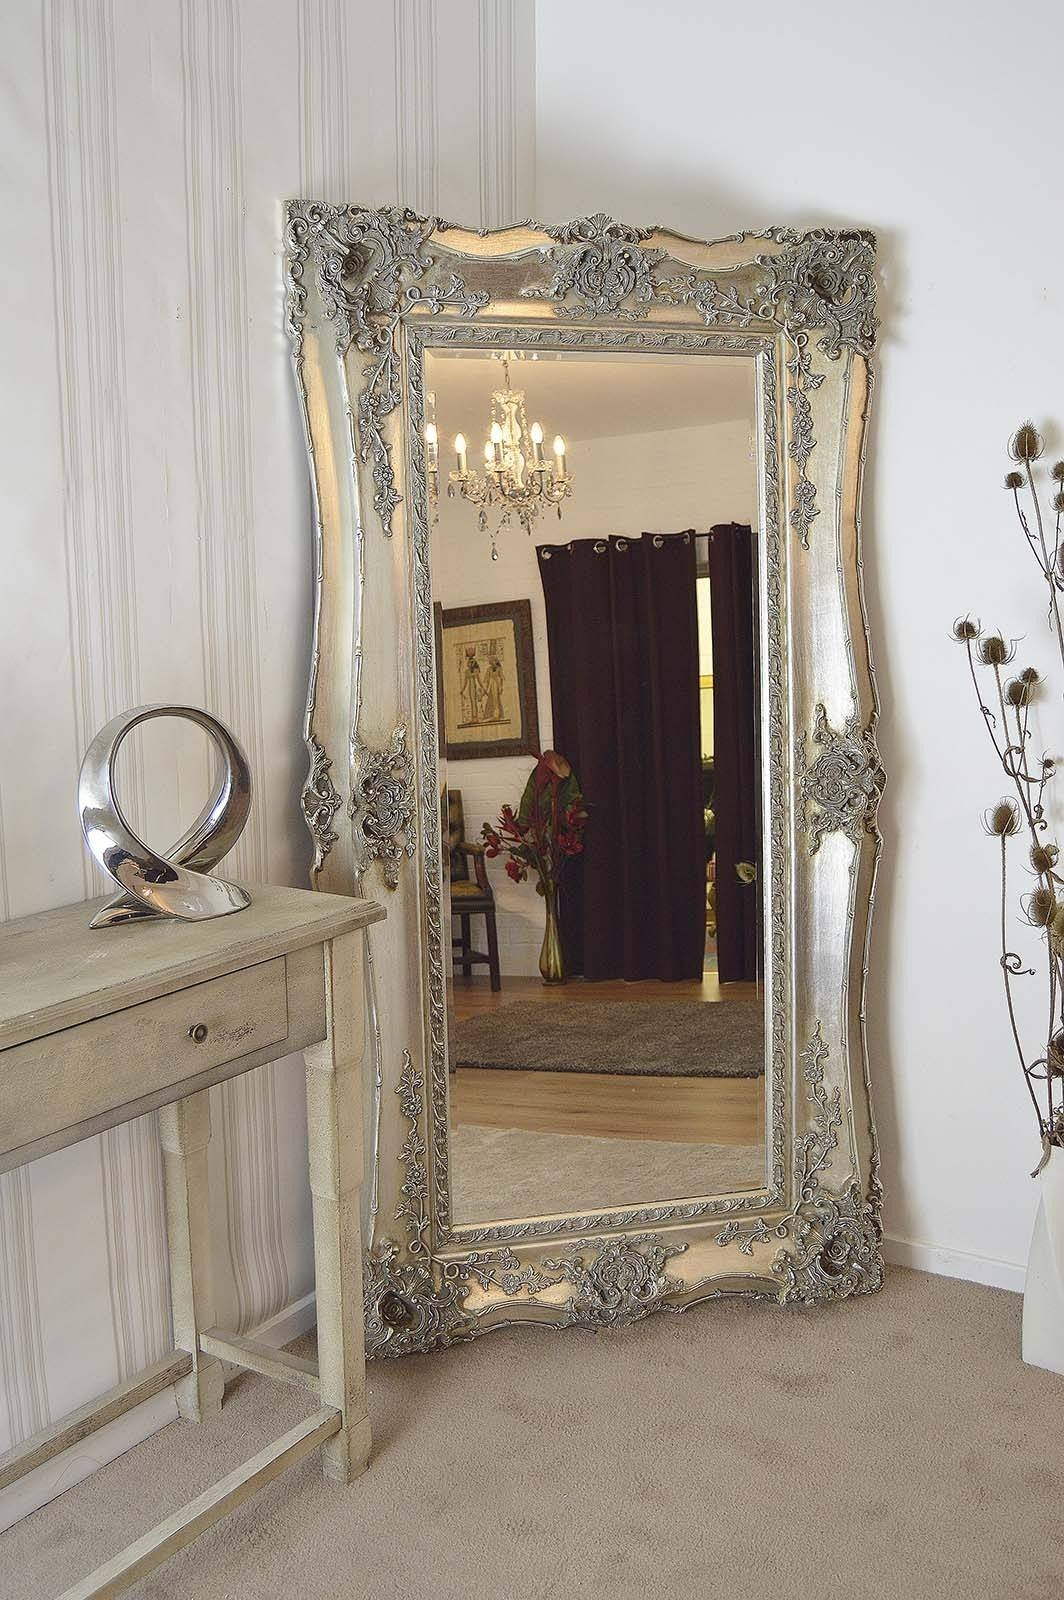 Big Silver Framed Mirror | Vanity Decoration With Silver Vintage Mirrors (View 4 of 15)